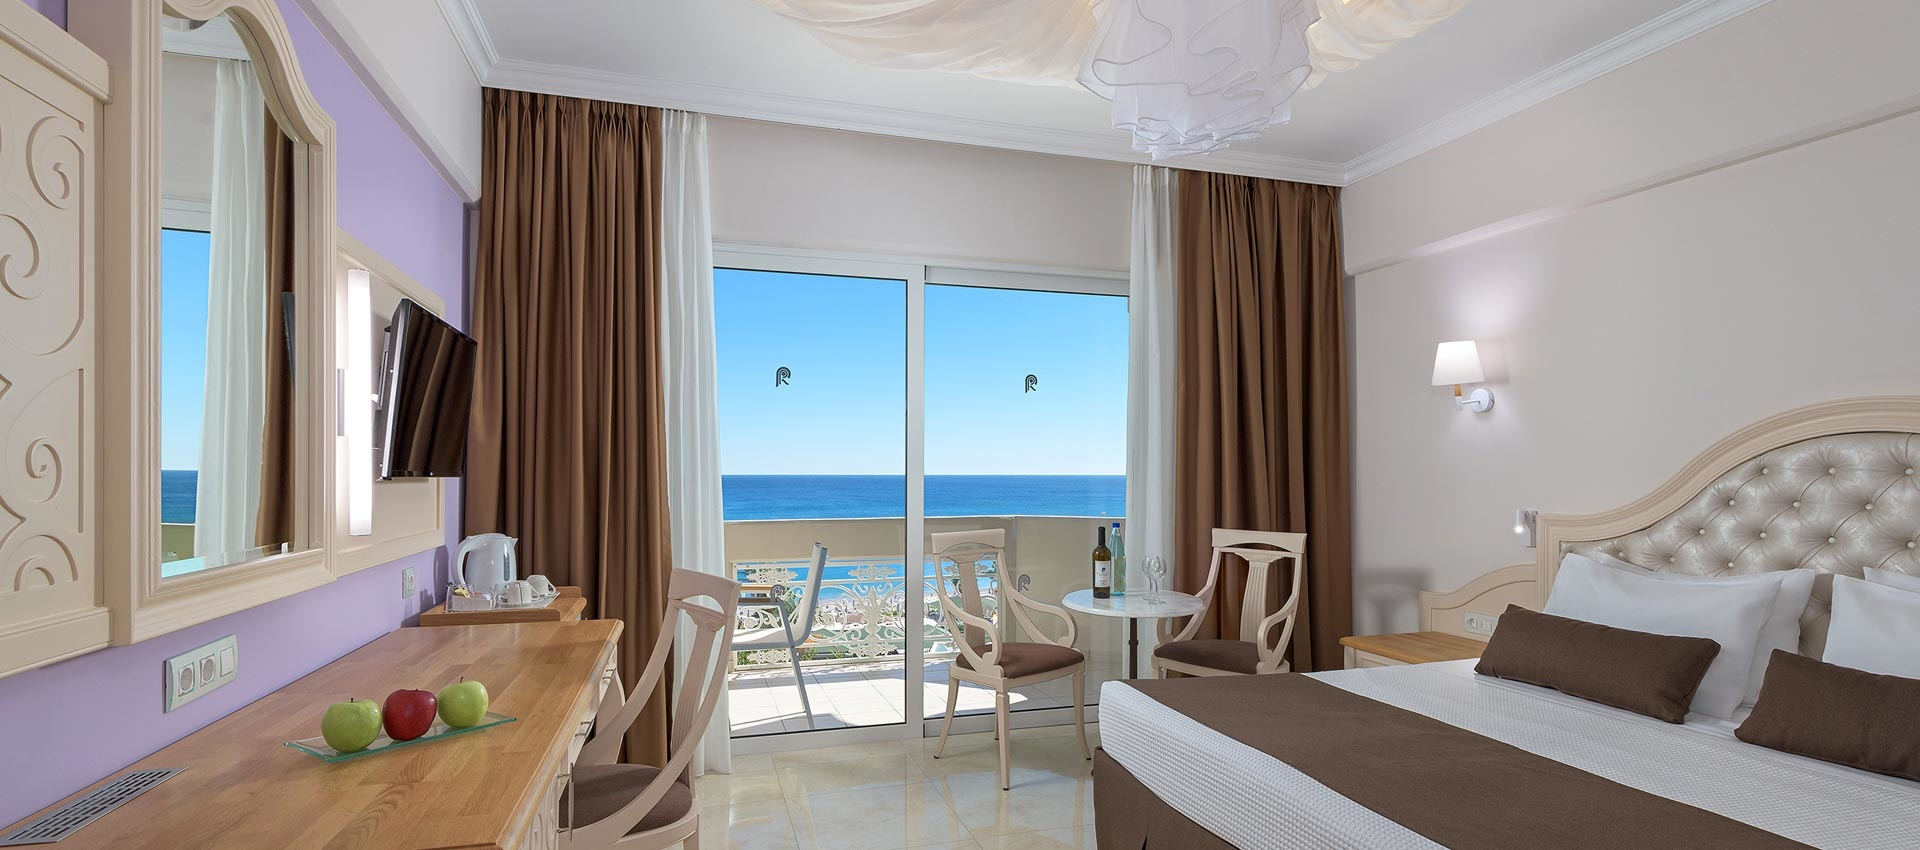 147_DELUXE_ROOM_SEAVIEW_WEB50